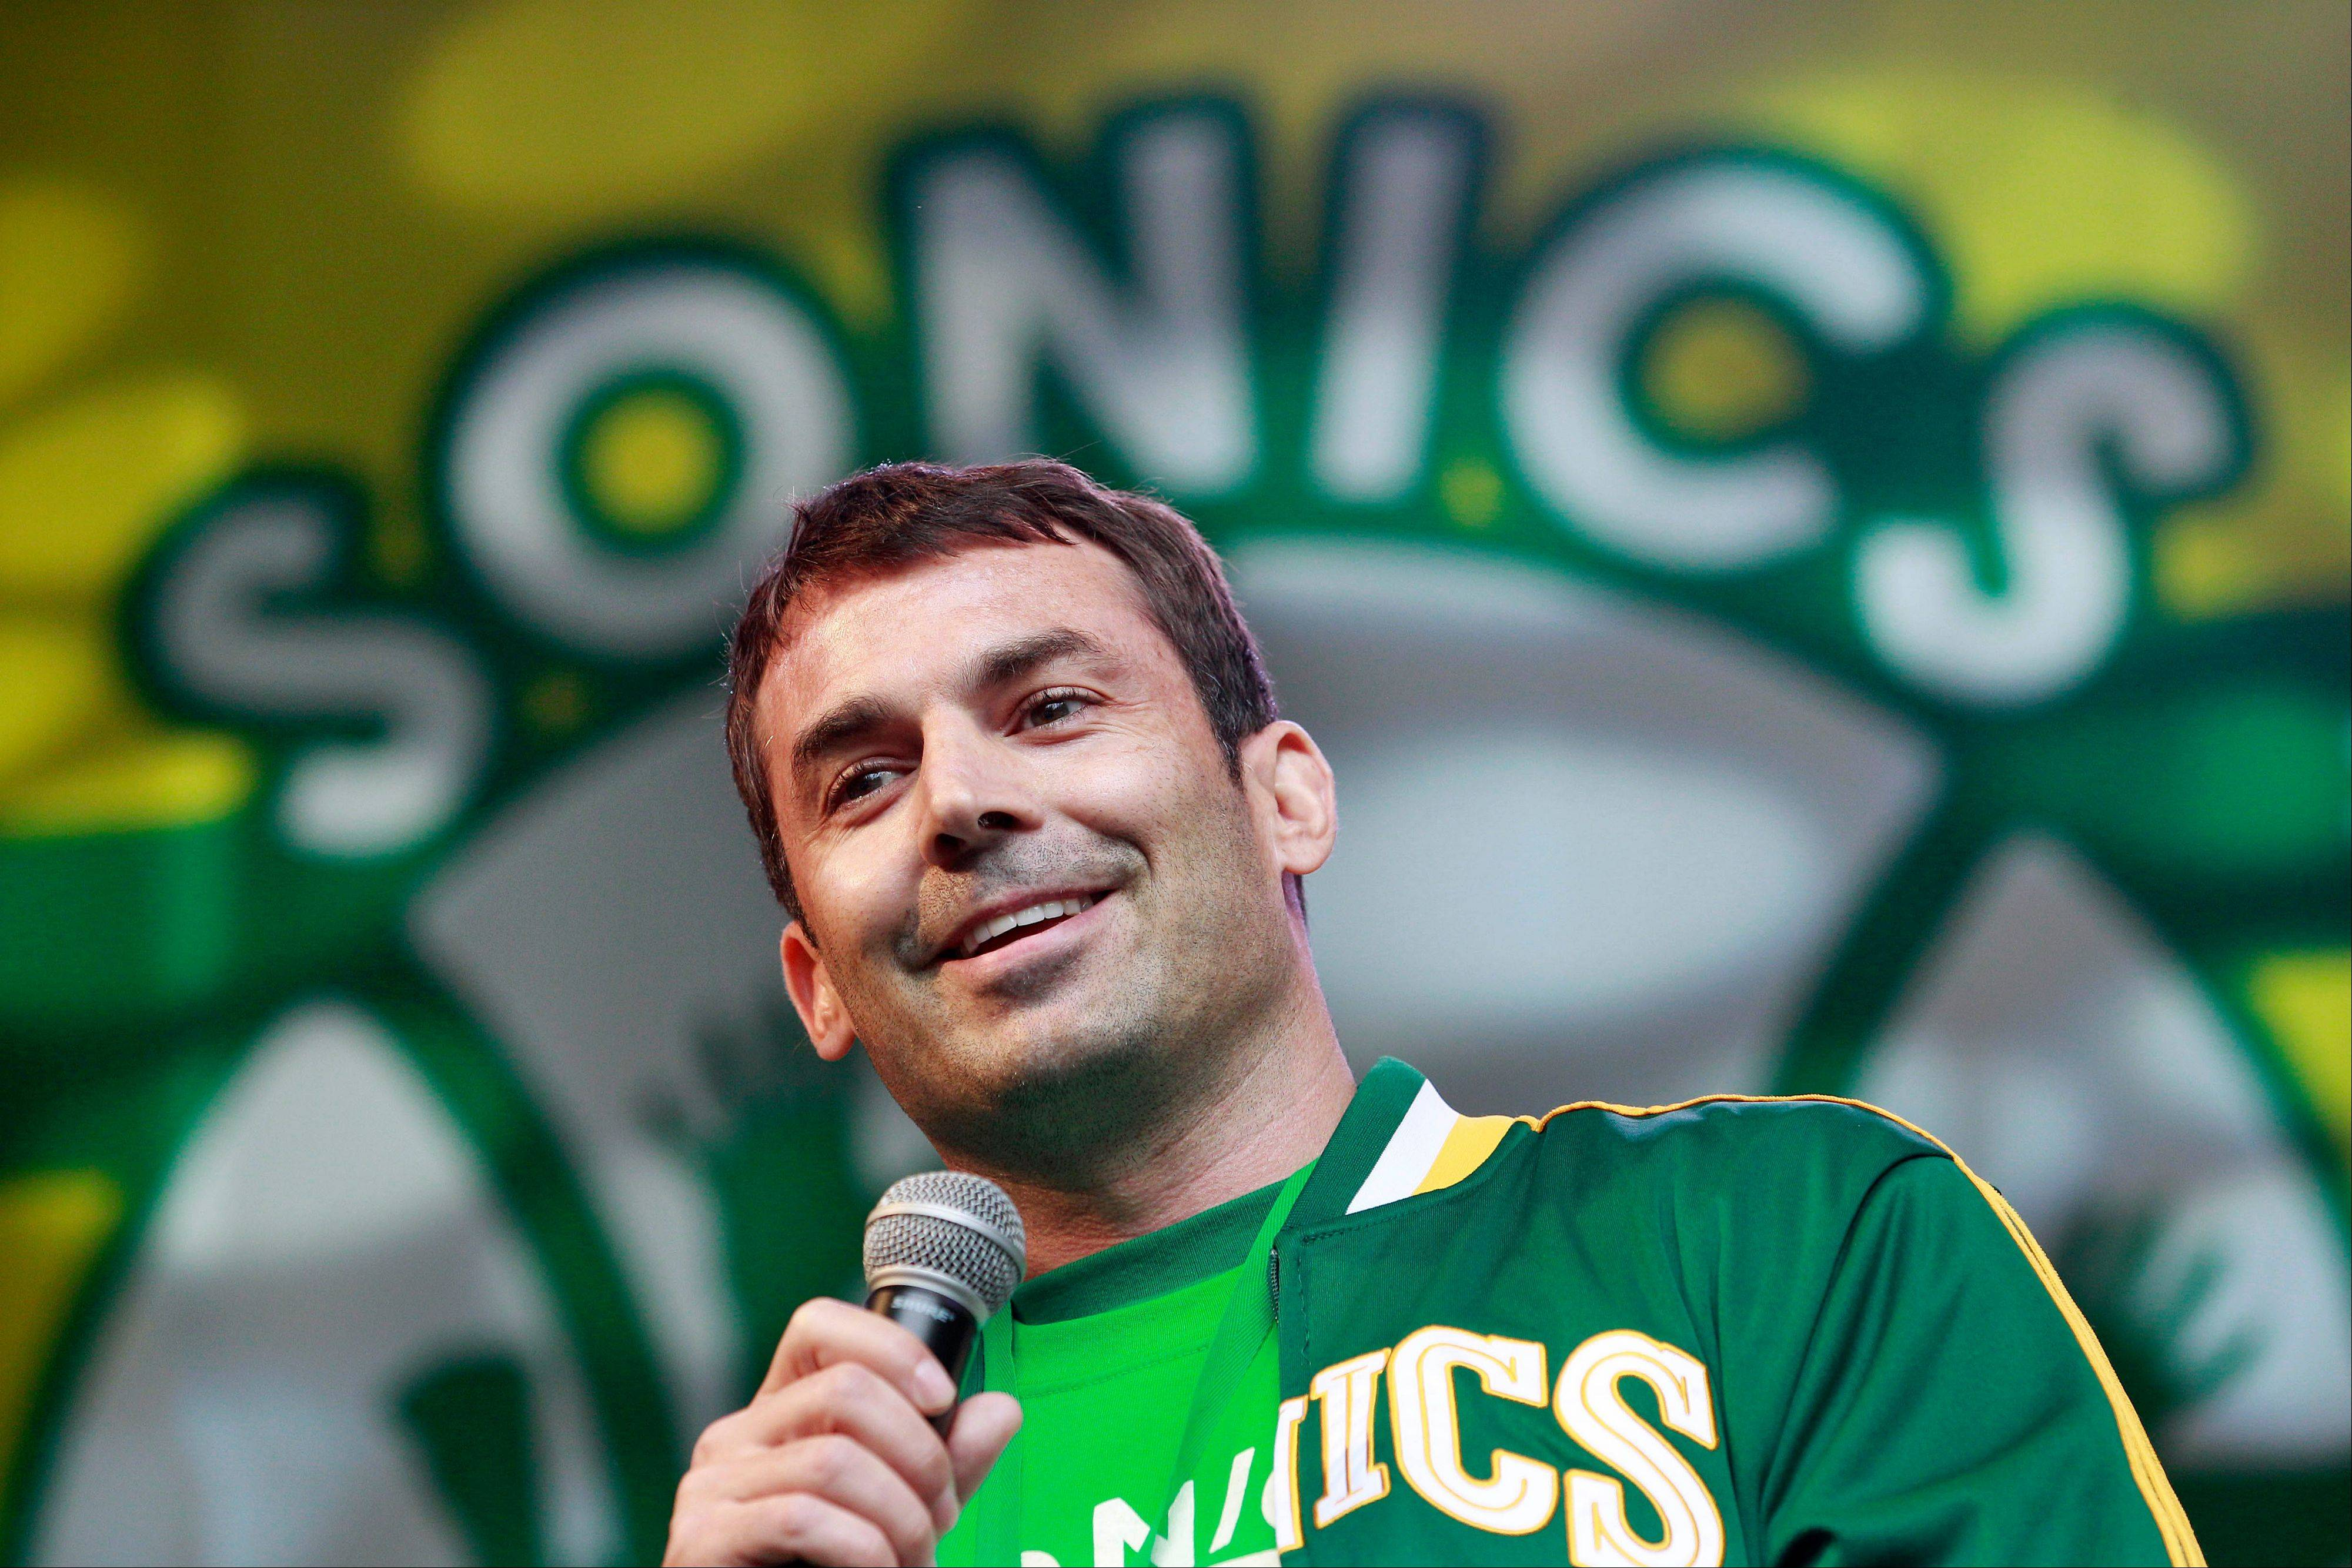 In this June 14, 2012, file photo, investor Chris Hansen smiles as he speaks to supporters of a proposal for a new NBA arena during a rally in Seattle. People with knowledge of the situation said Wednesday, Jan. 9, 2013, that Hansen has contacted the Maloof family about buying the Sacramento Kings. The people spoke on condition of anonymity because no deal has been reached. The Kings' future in Sacramento has been uncertain because the Maloofs and the city haven't been able to come up with a long-term arena solution.